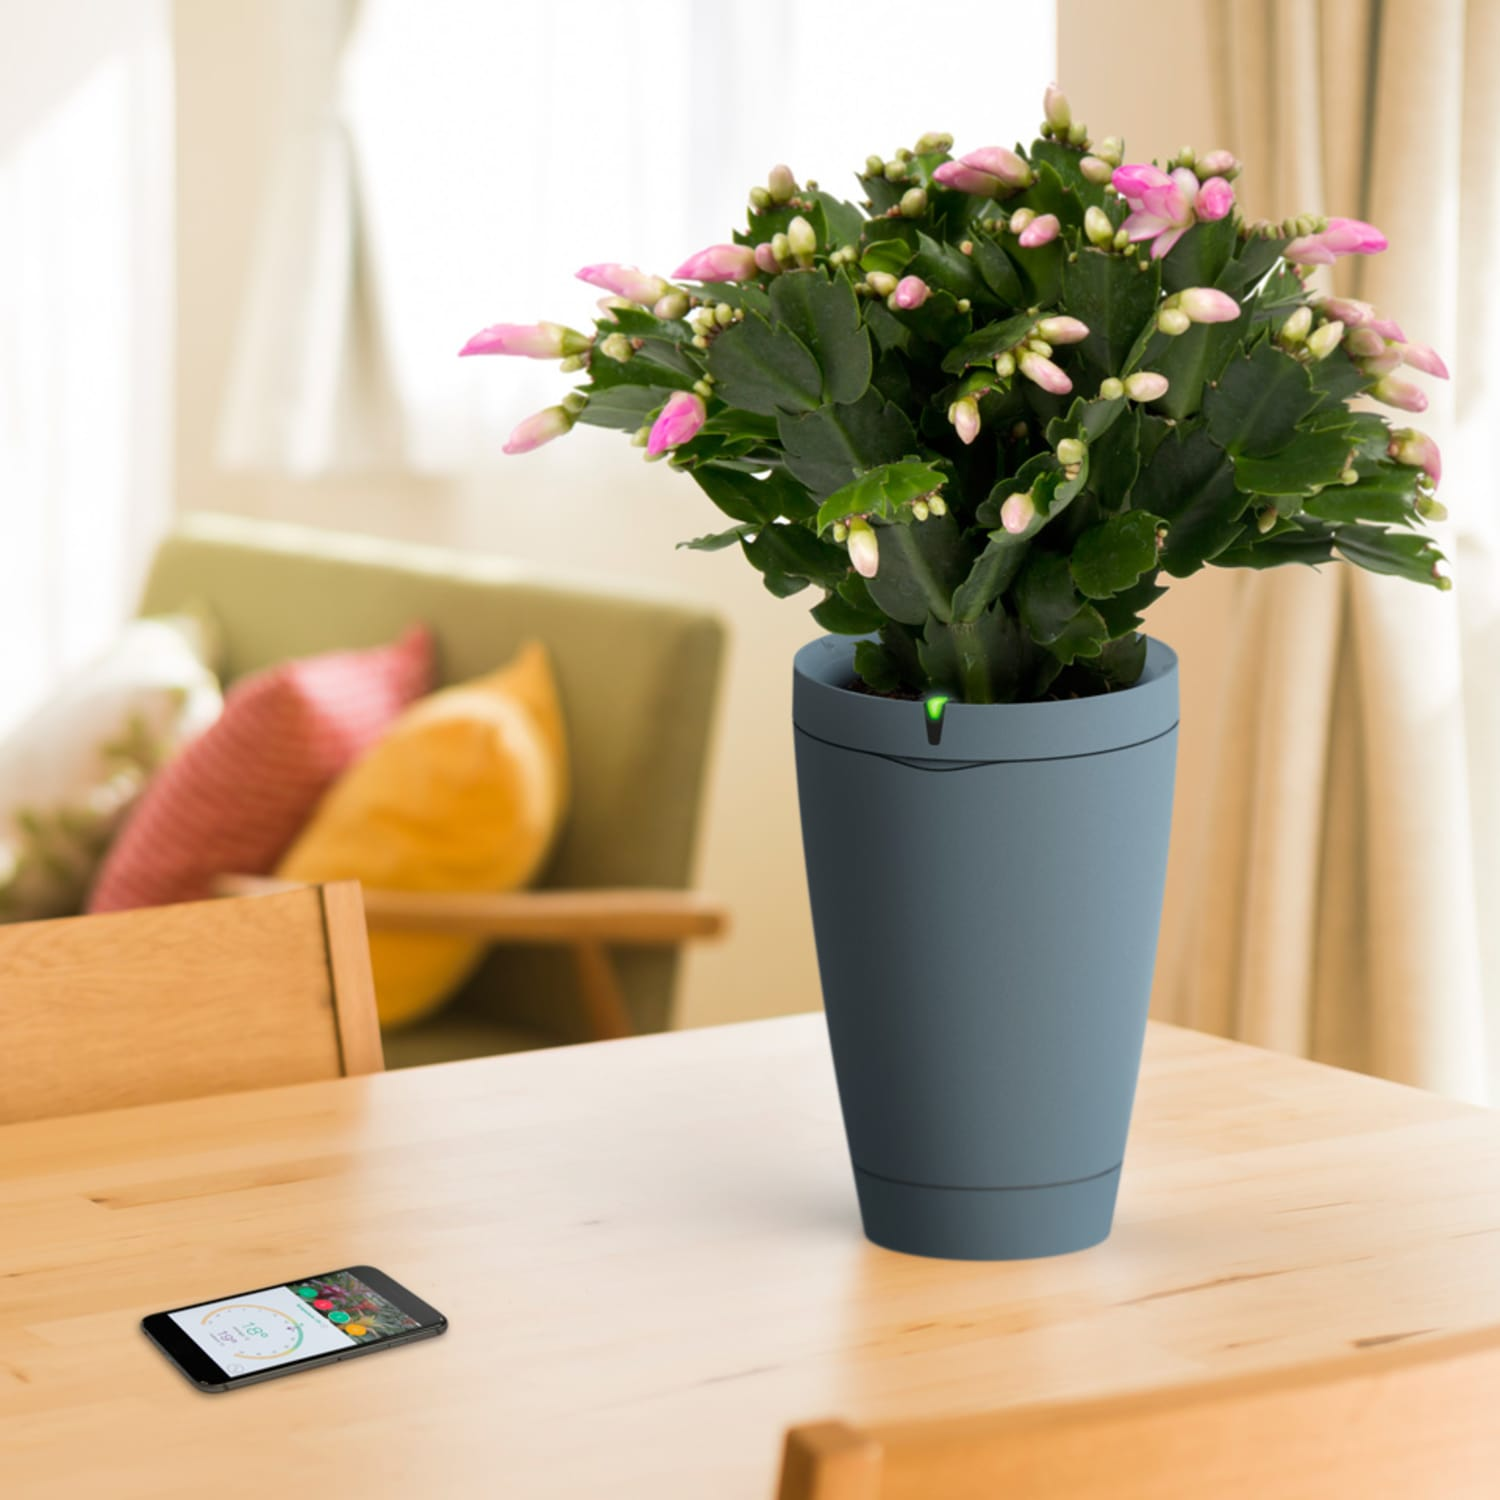 Smart Home Review: Black Thumbs Will Love Parrot's Self-Watering